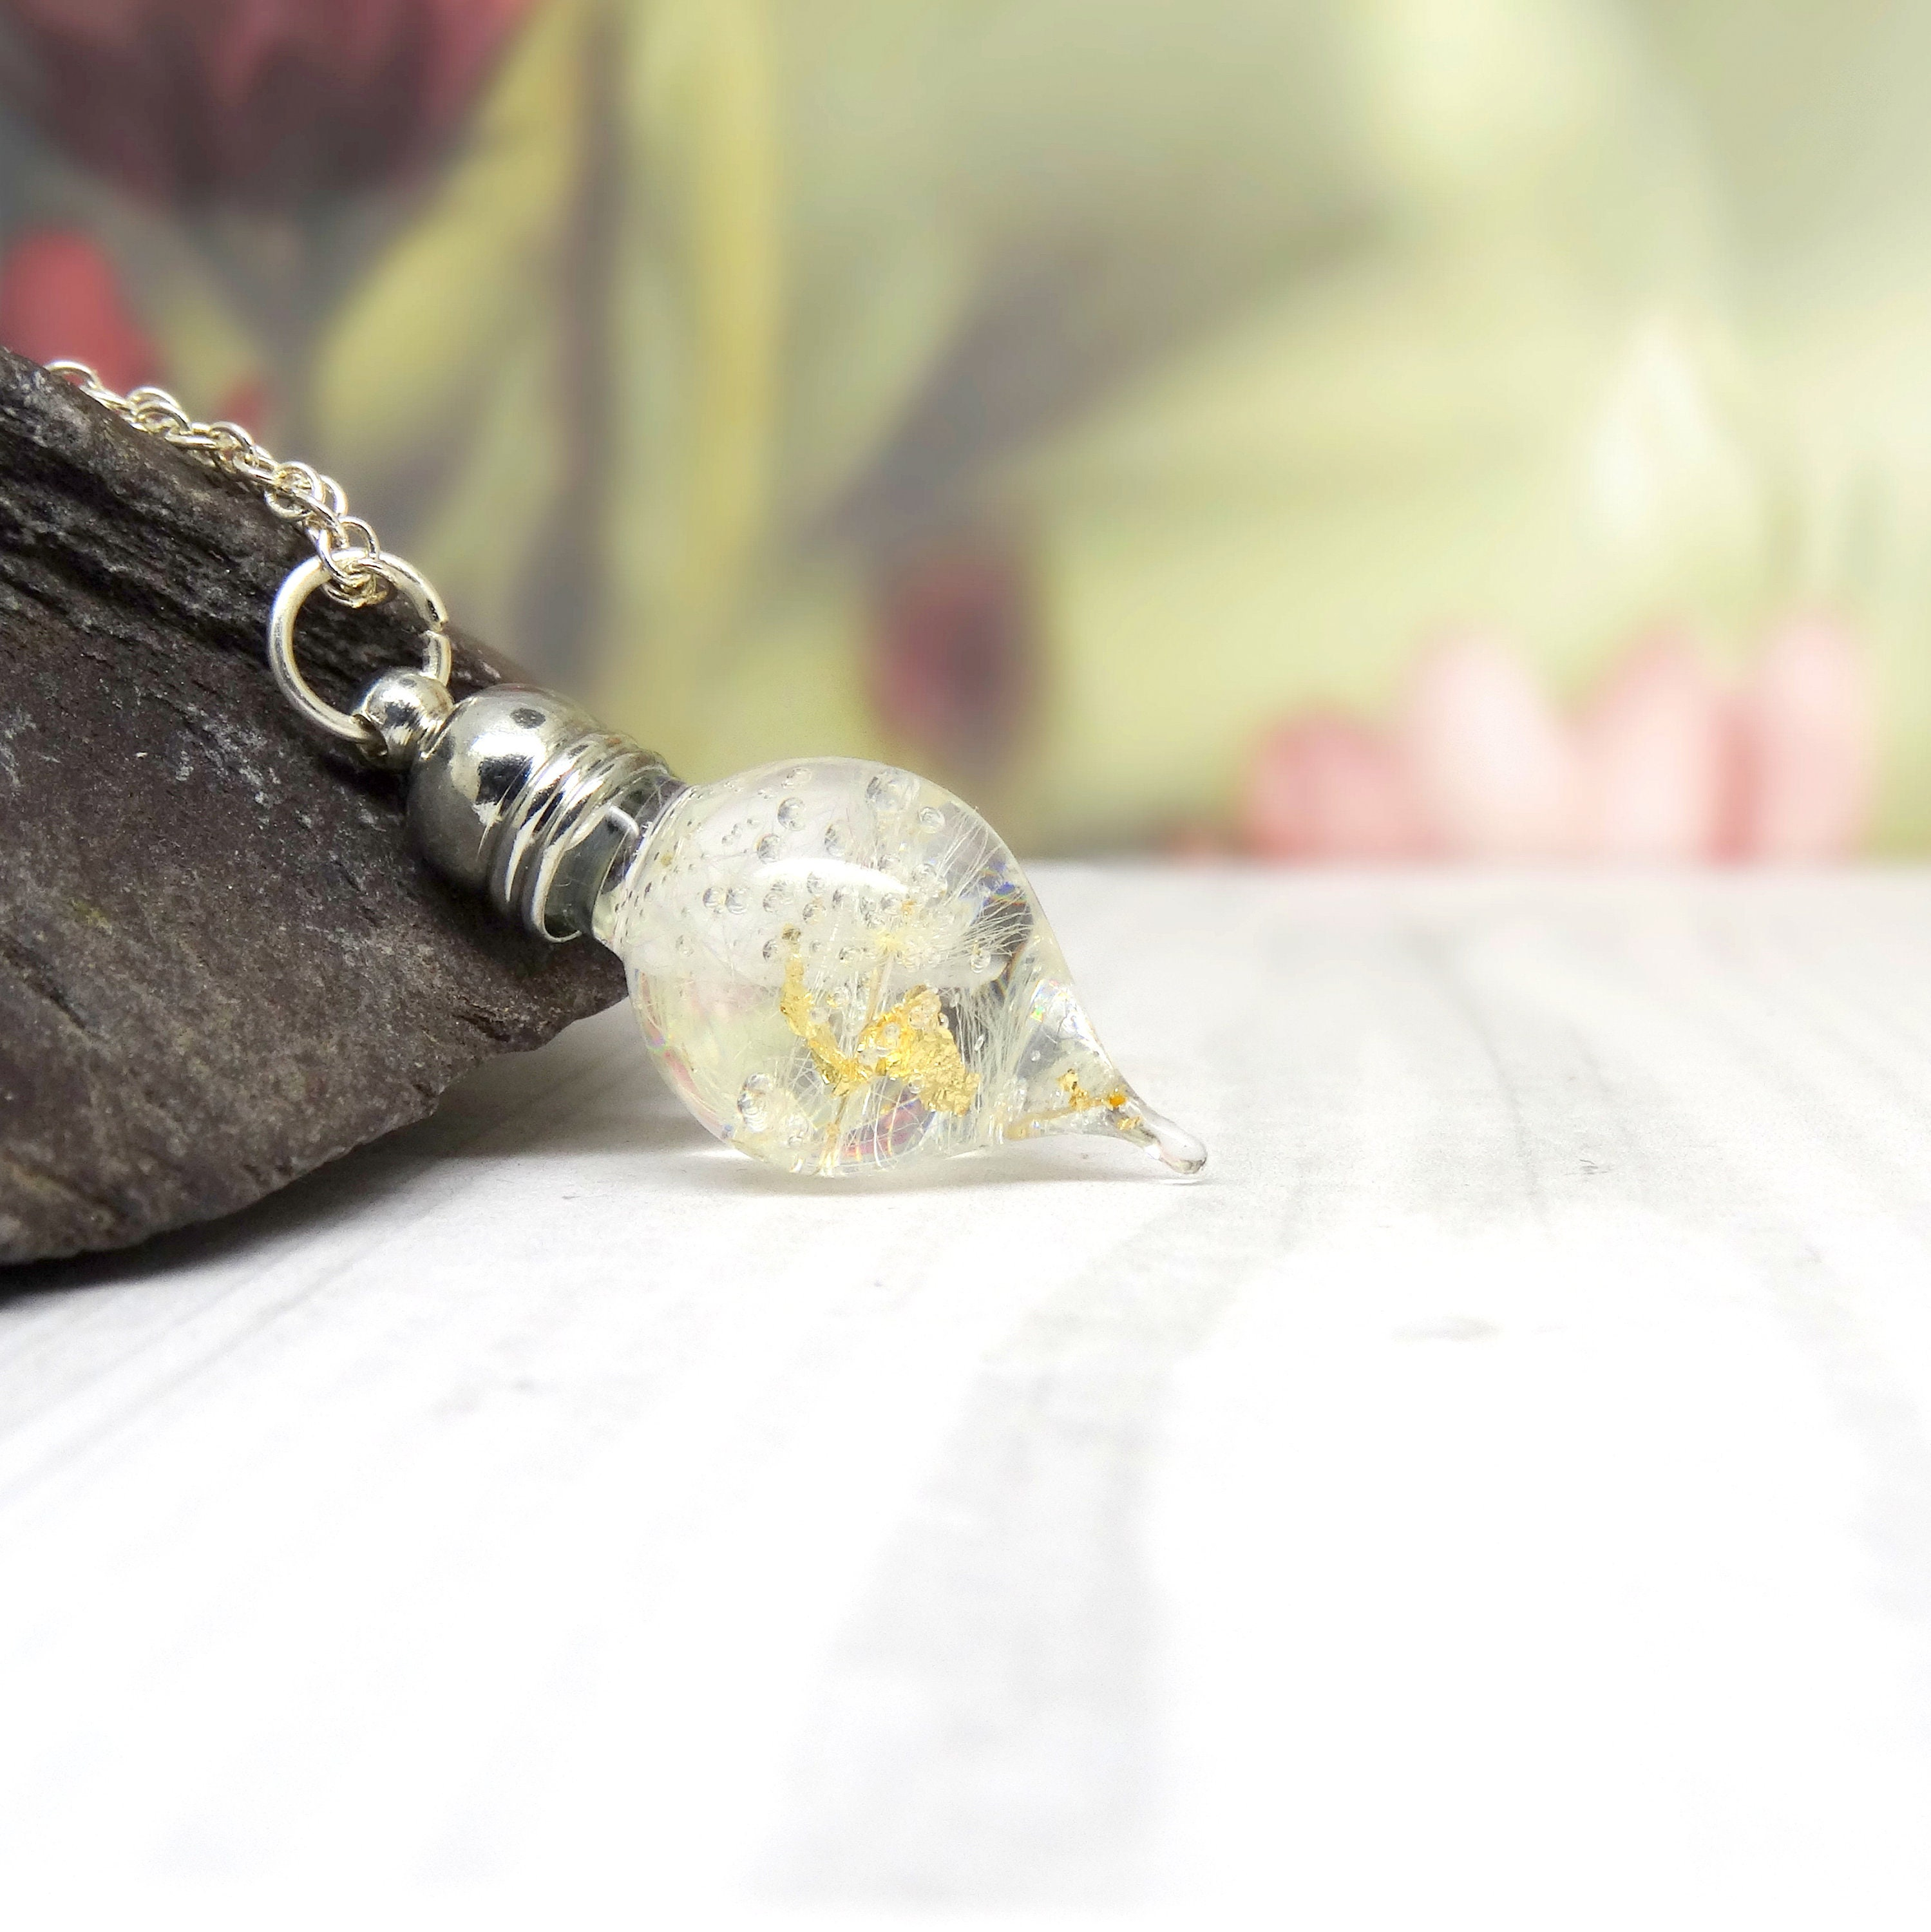 Dandelion Necklace With 24k Gold Leaf Real Flower Necklace Handmade Gift For Her Terrarium Necklace Make A Wish Dandelion Jewelry